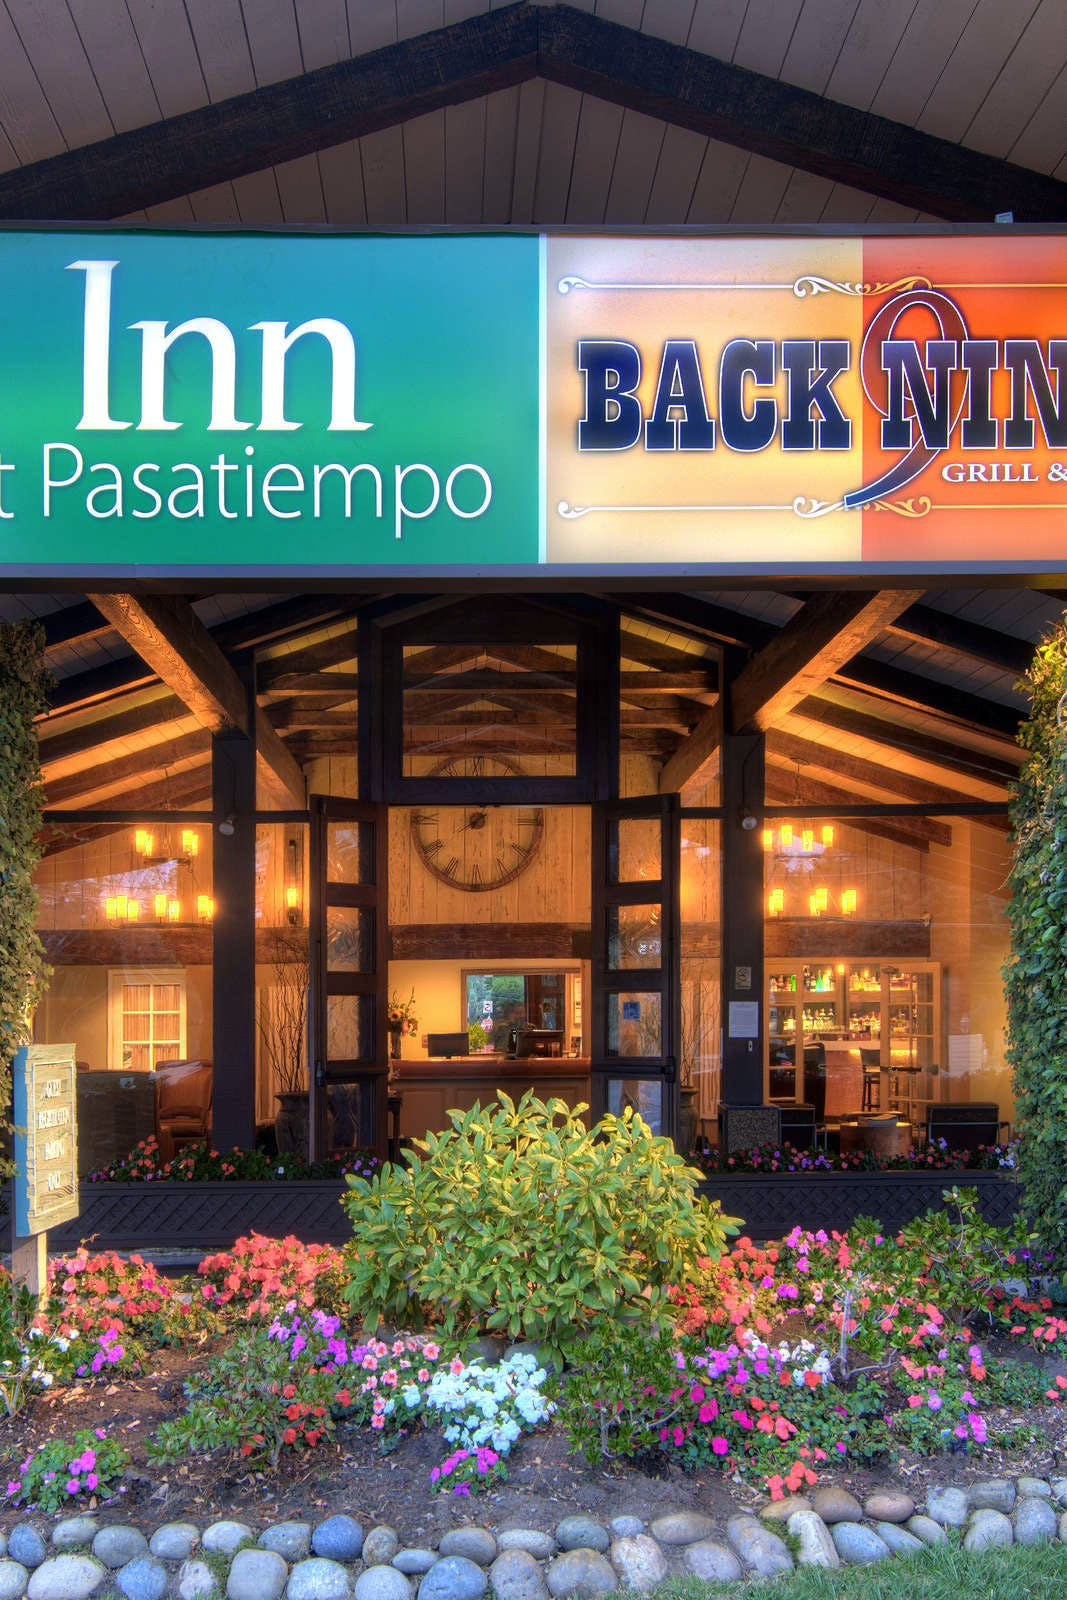 The Inn at Pasatiempo